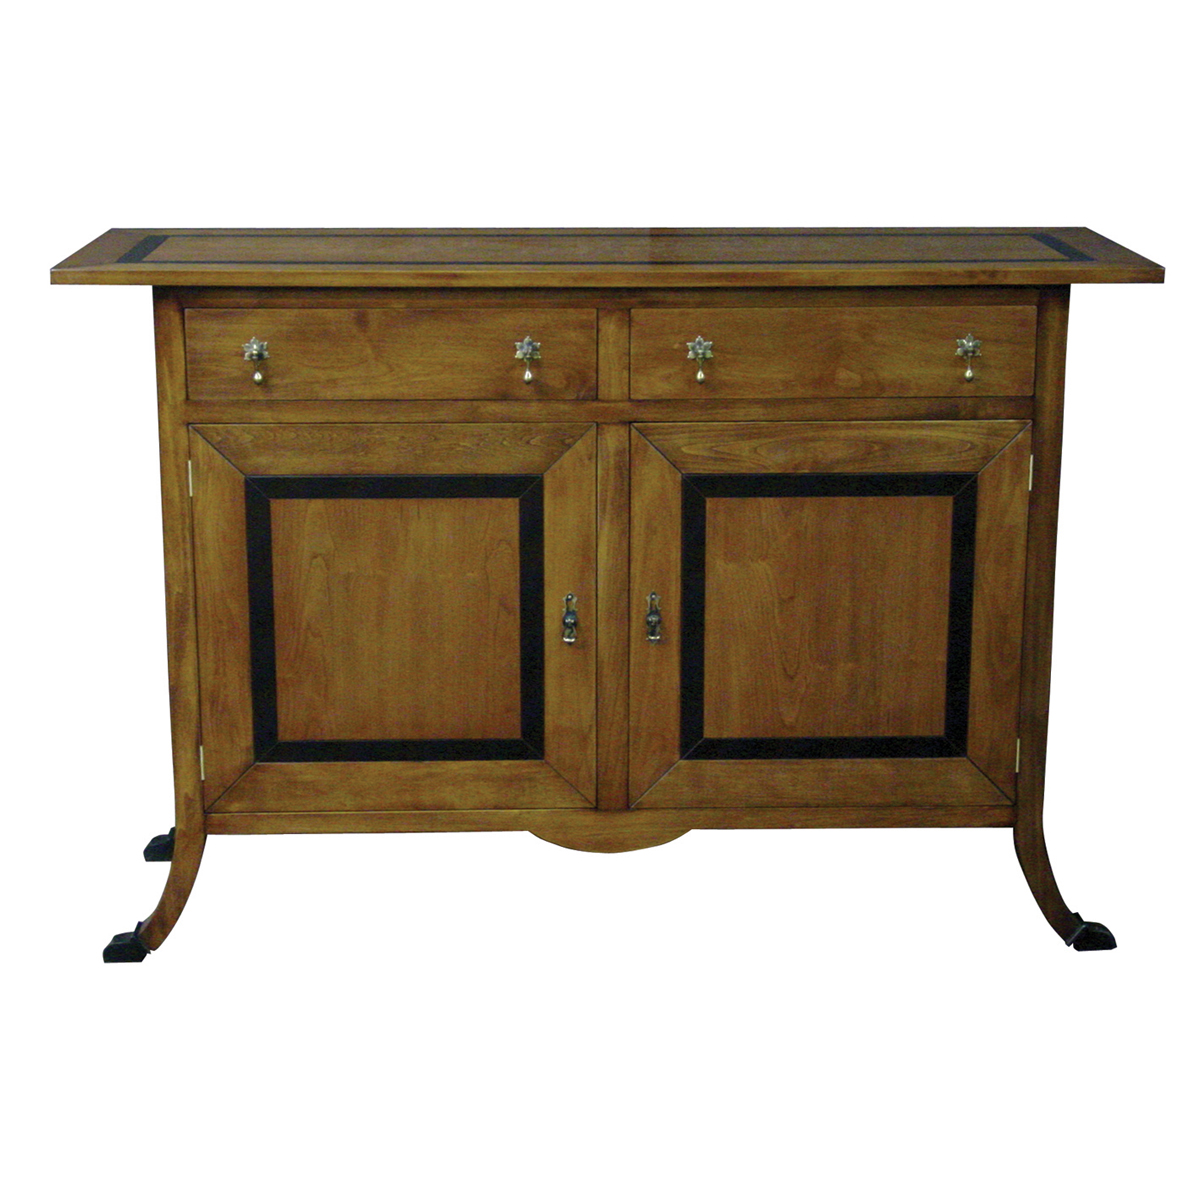 Sideboards, Servers & Huntboards - Englishman's Fine Furnishings